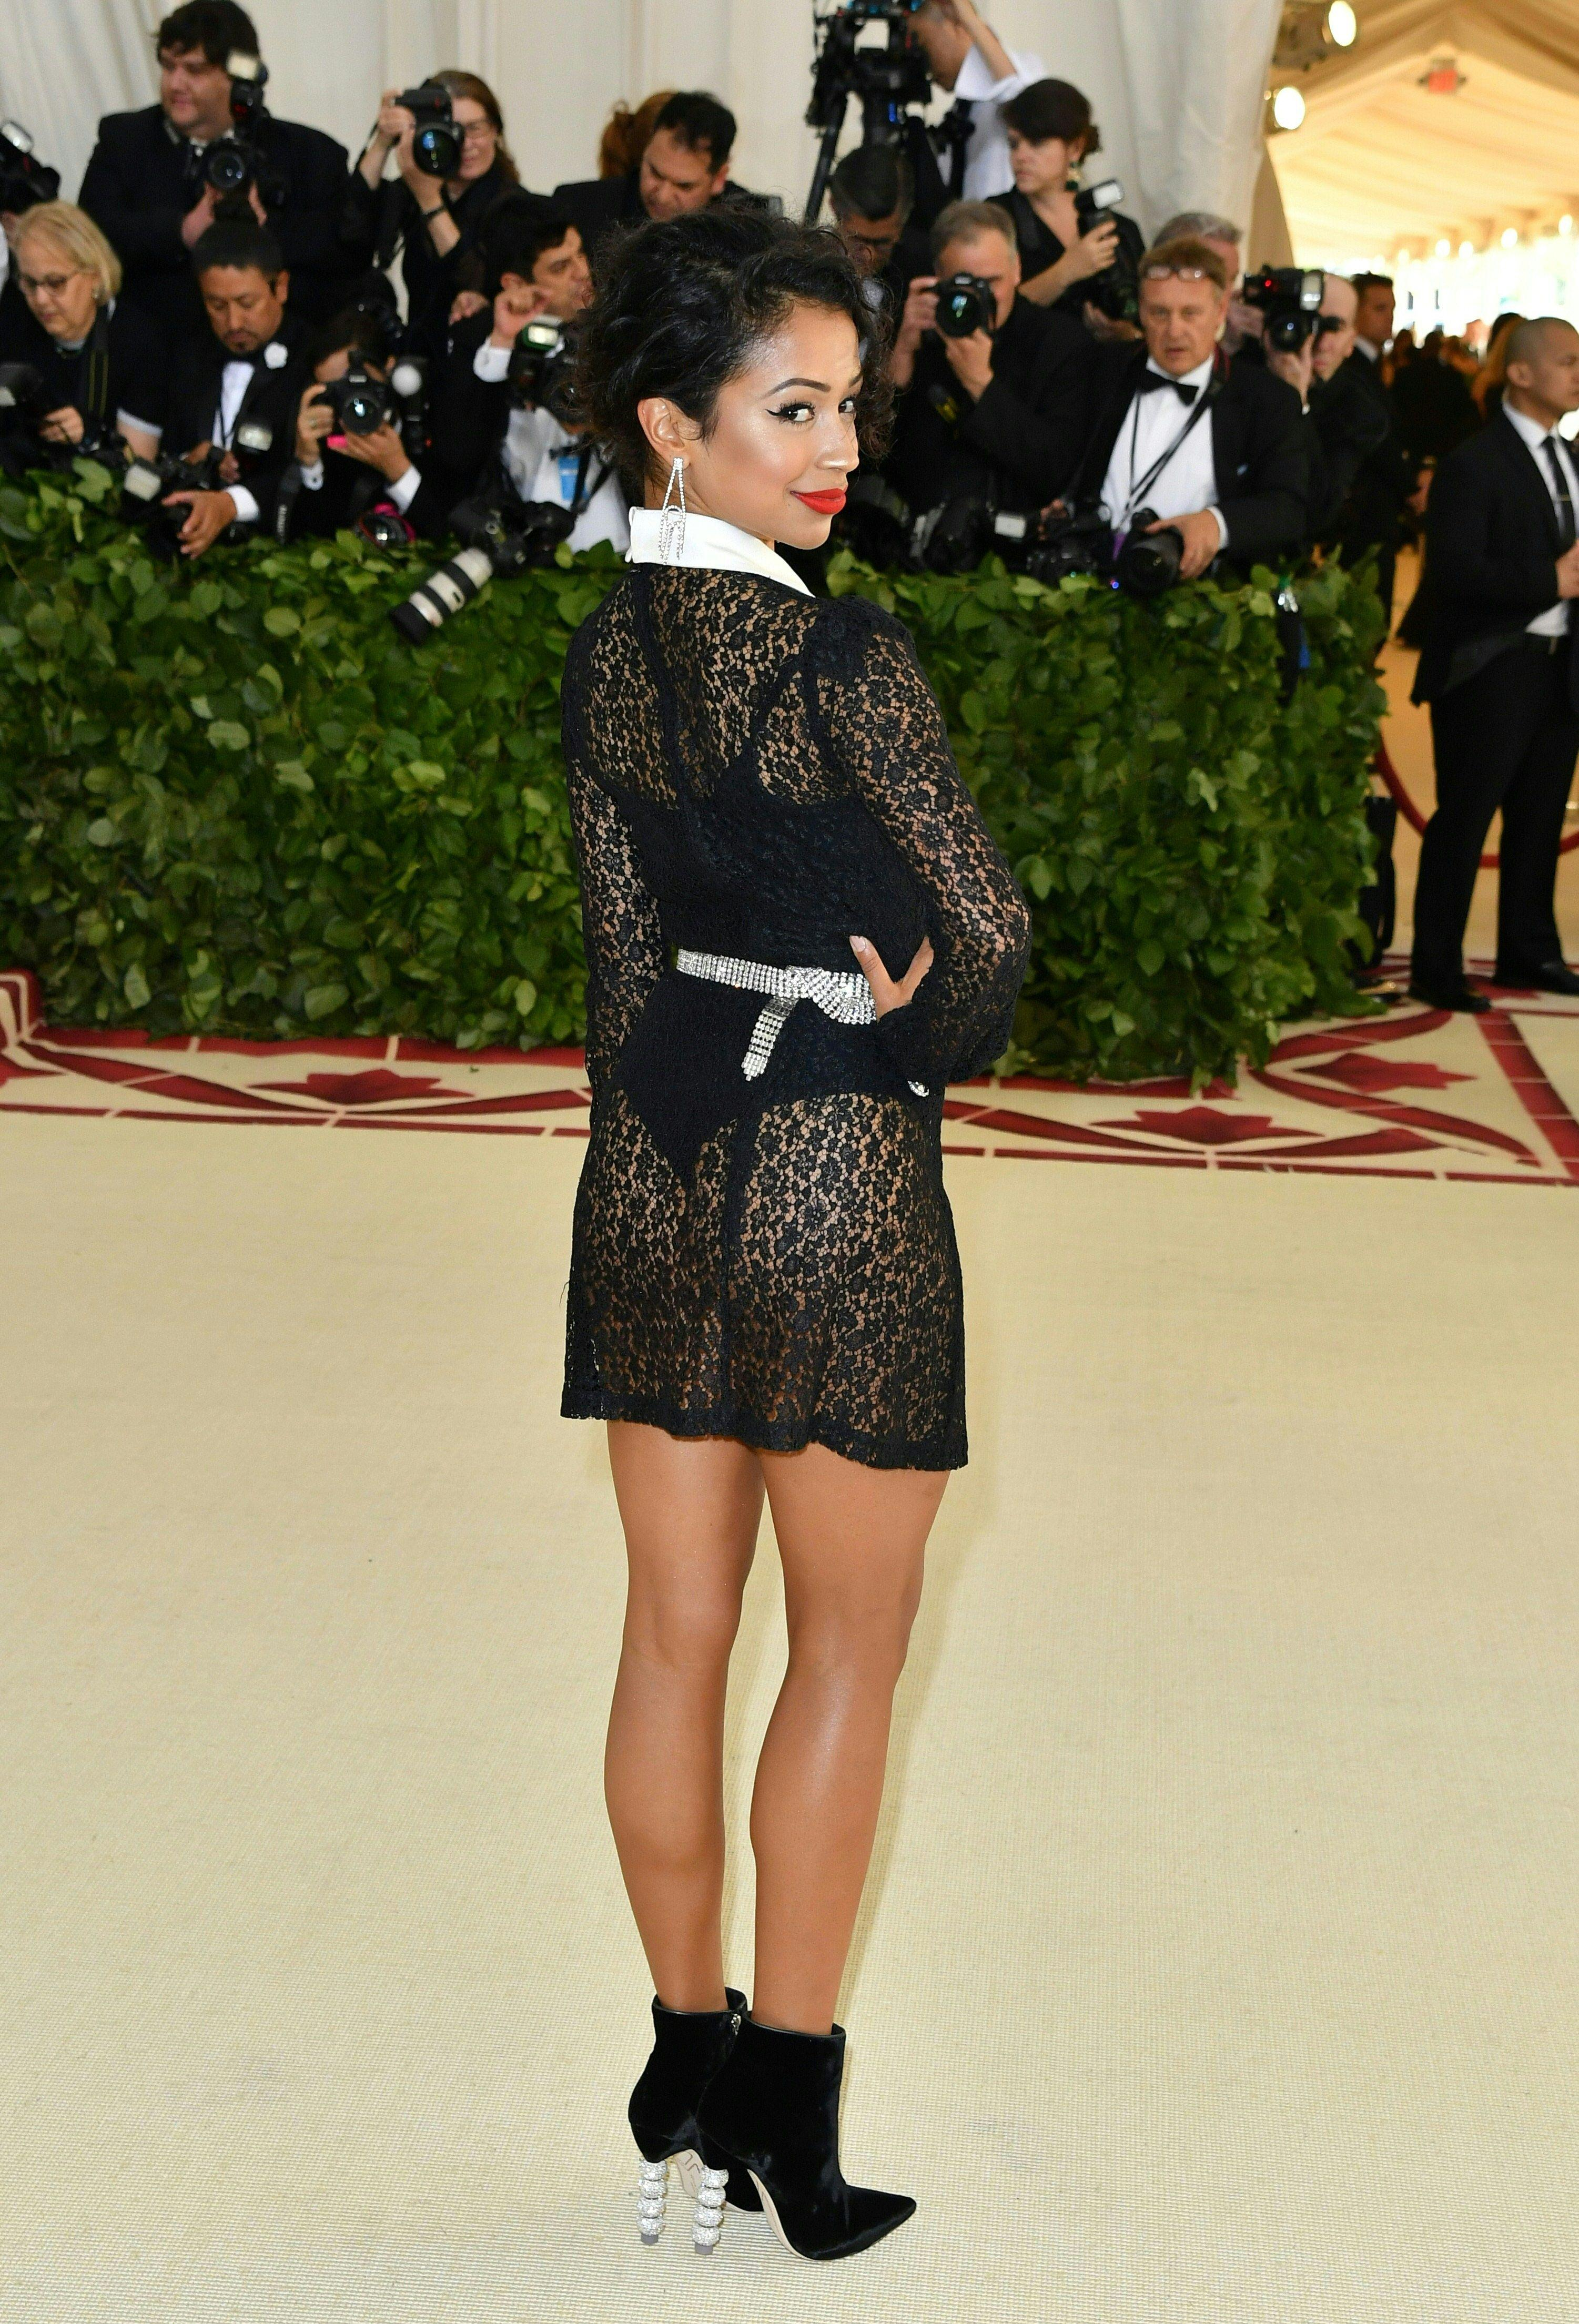 Liza Koshy arrives for the 2018 Met Gala on May 7, 2018, at the Metropolitan Museum of Art in New York. - The Gala raises money for the Metropolitan Museum of Artââ¬â¢s Costume Institute. The Gala's 2018 theme is ââ¬ÅHeavenly Bodies: Fashion and the Catholic Imagination.ââ¬ï¿½ (Photo by Angela WEISS / AFP)        (Photo credit should read ANGELA WEISS/AFP/Getty Images)